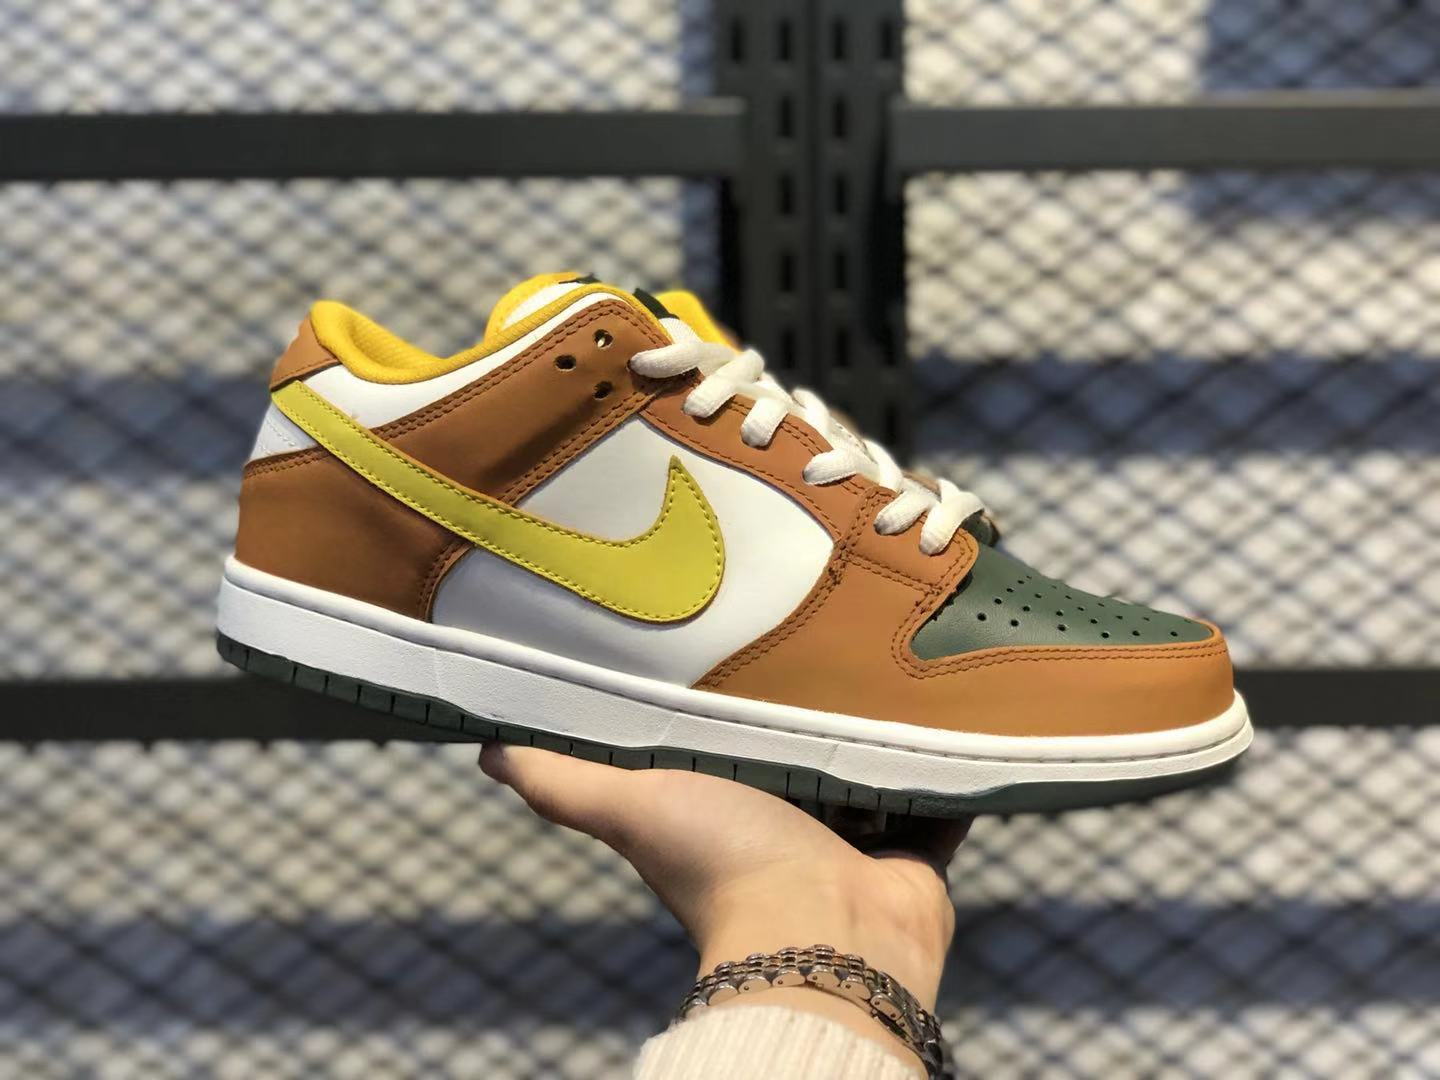 Nike SB Dunk Low Vapour/Mineral Yellow Men's Sneakers 304292-271 For Sale